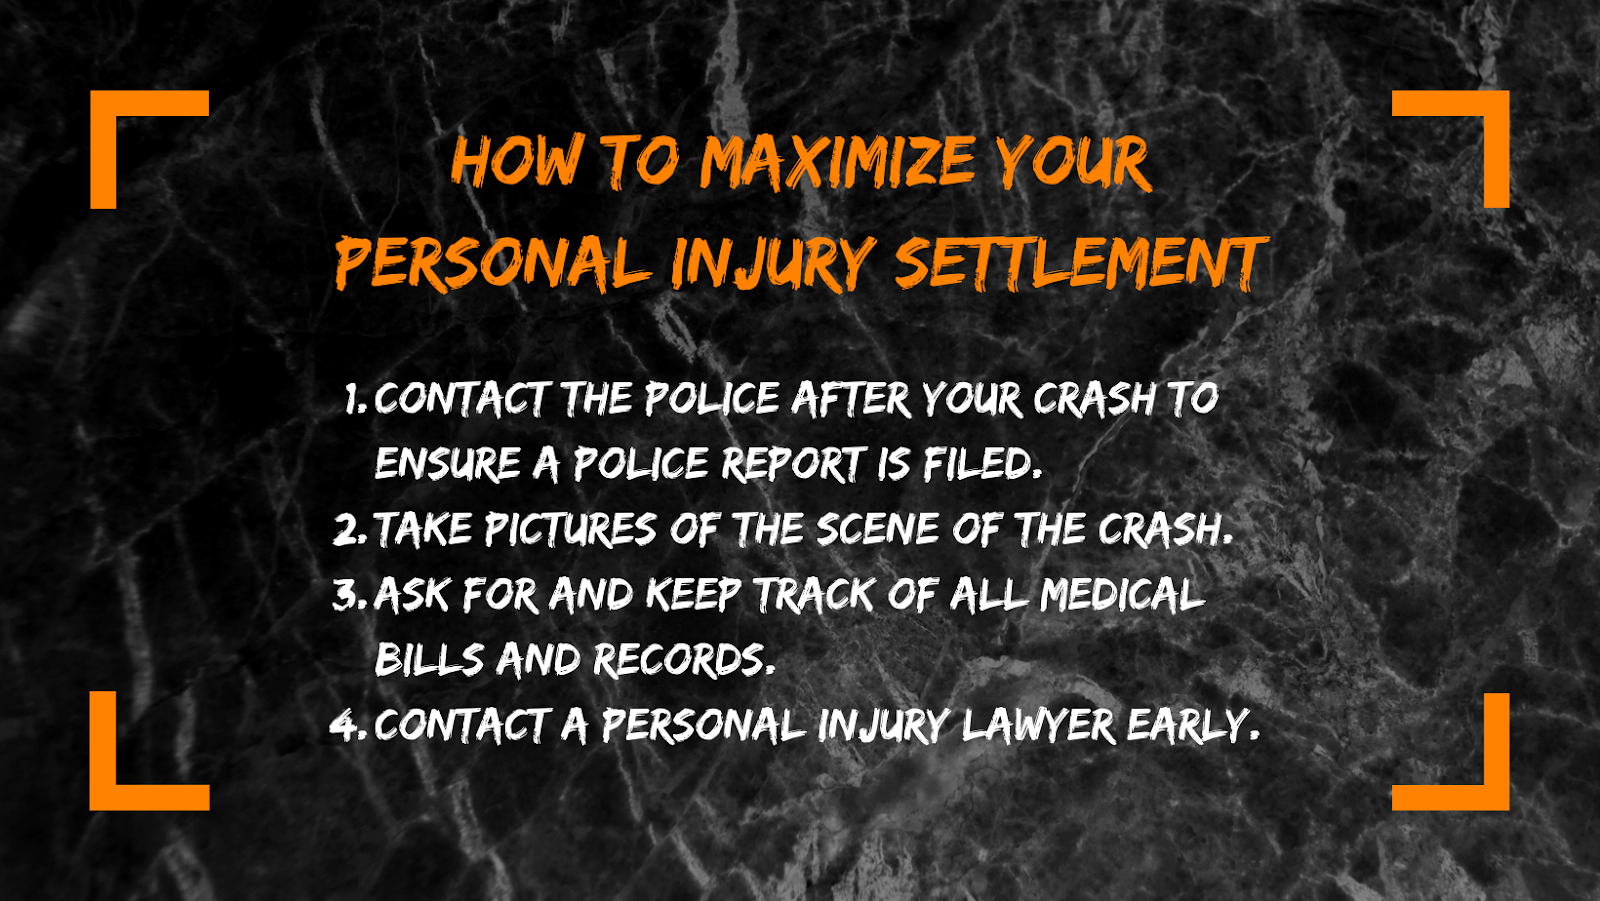 Image providing information about how to maximize personal injury settlements.